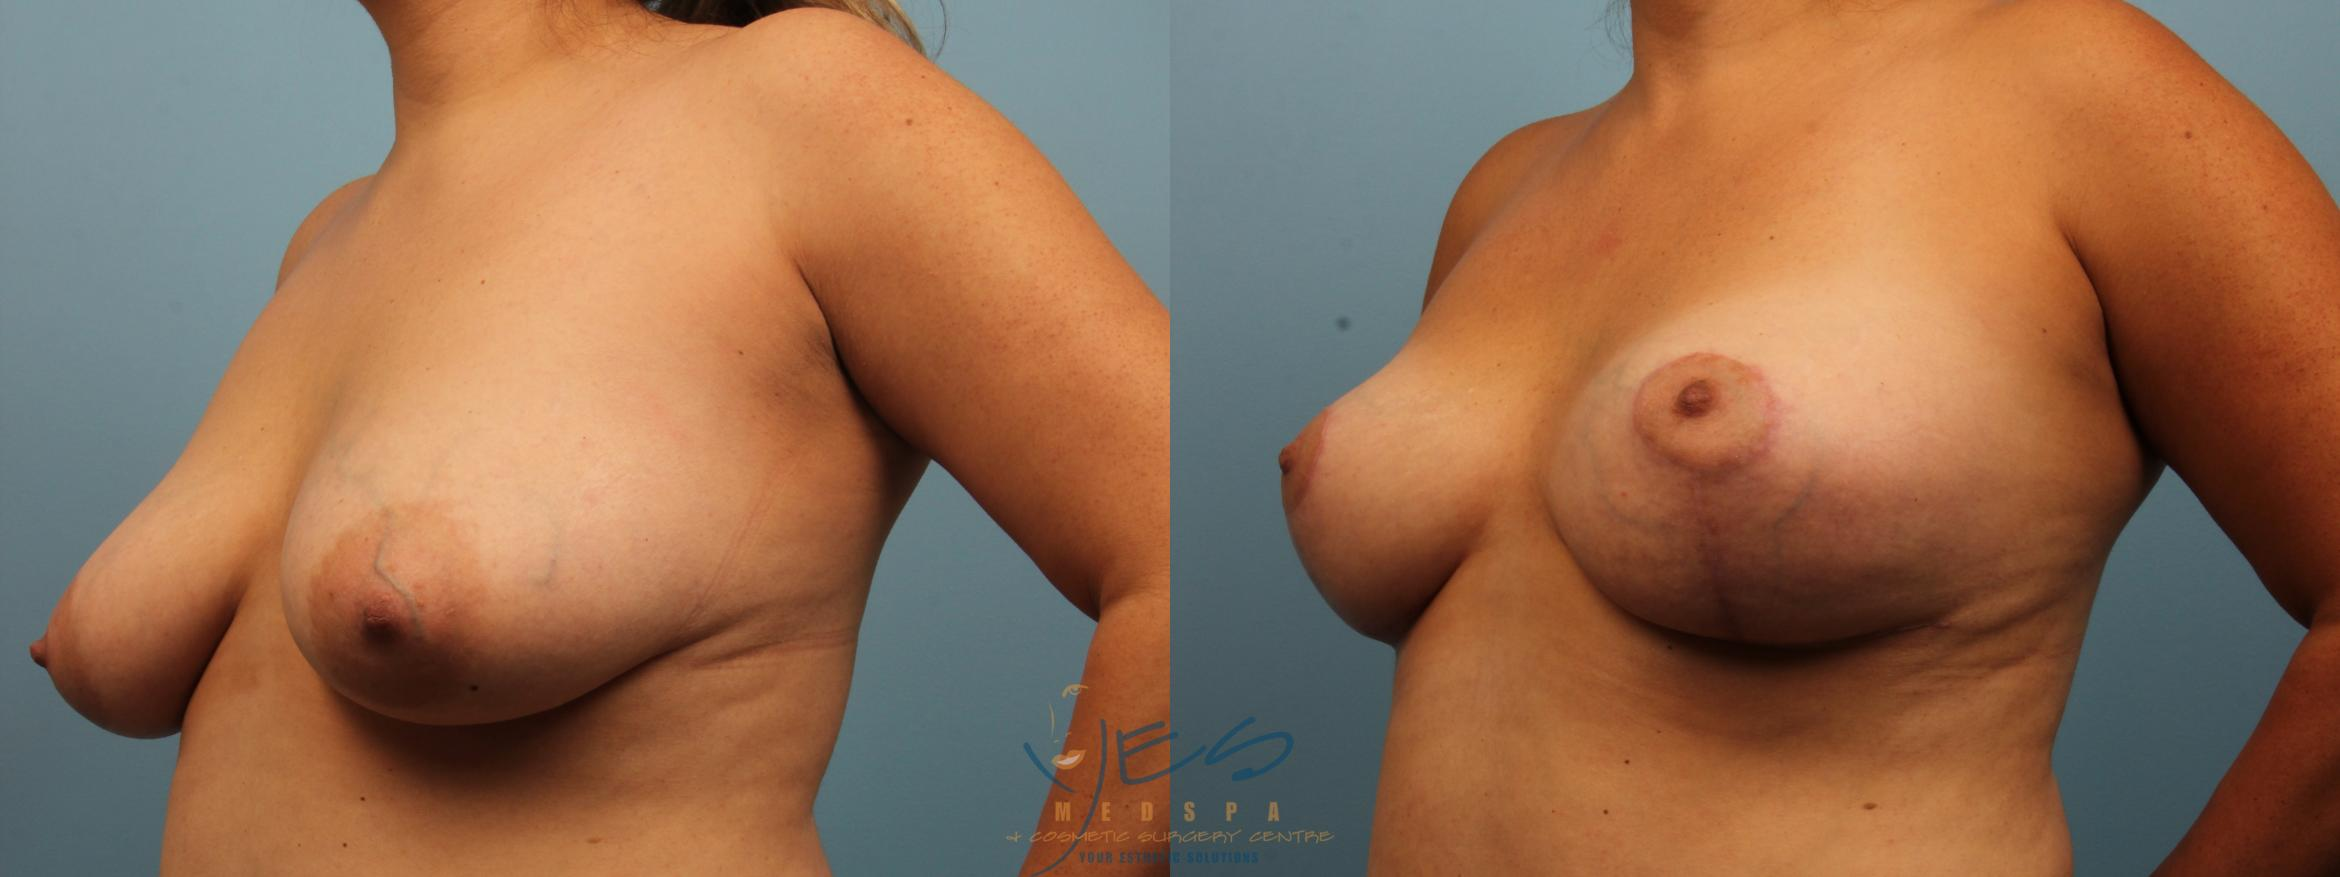 Breast Lift Case 300 Before & After Left Oblique | Vancouver, BC | YES Medspa & Cosmetic Surgery Centre